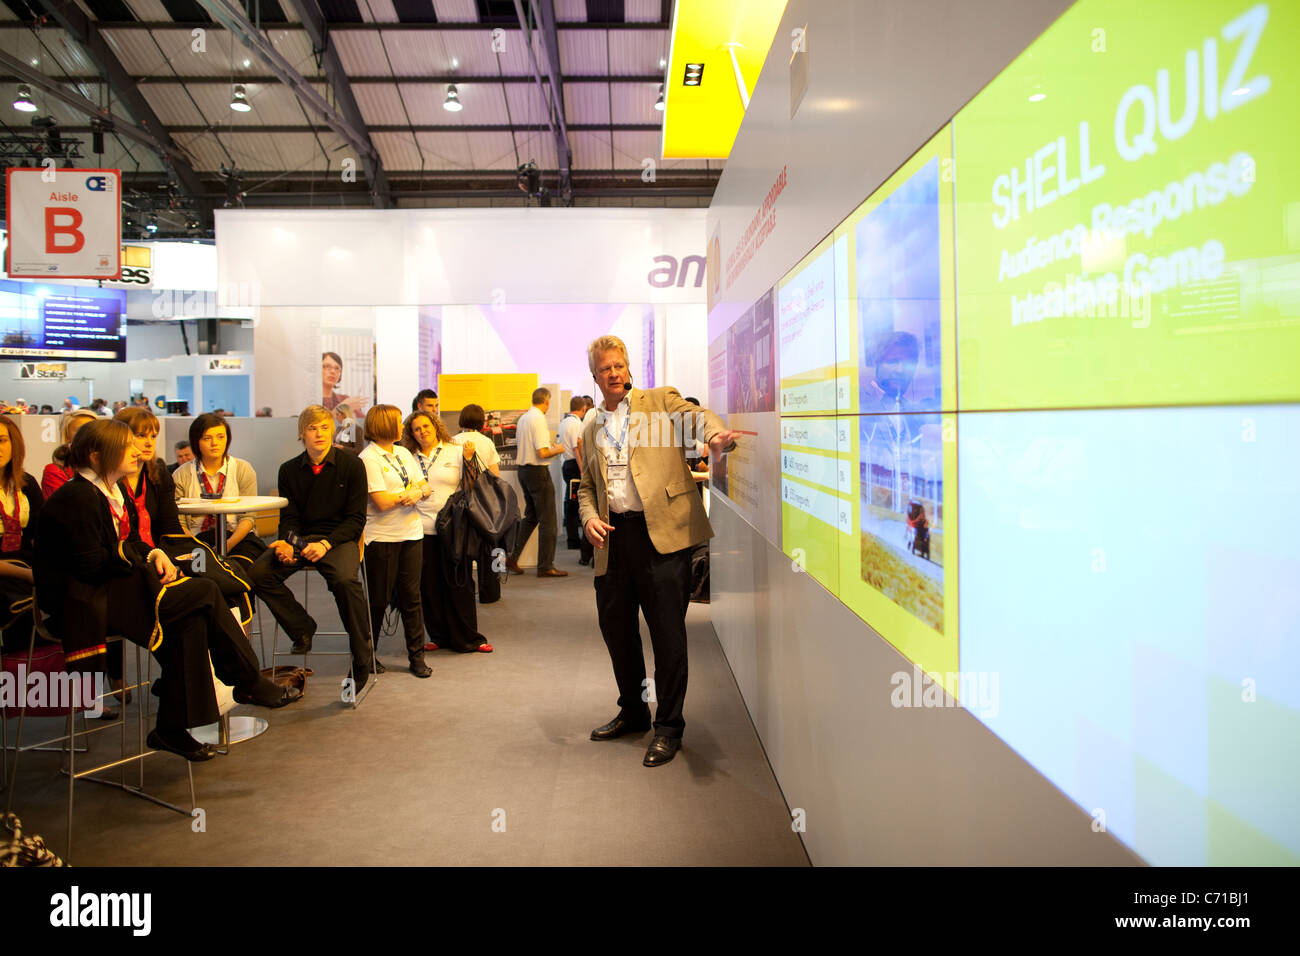 Exhibition Shell Zone : Shell stand at offshore europe oil and gas conference